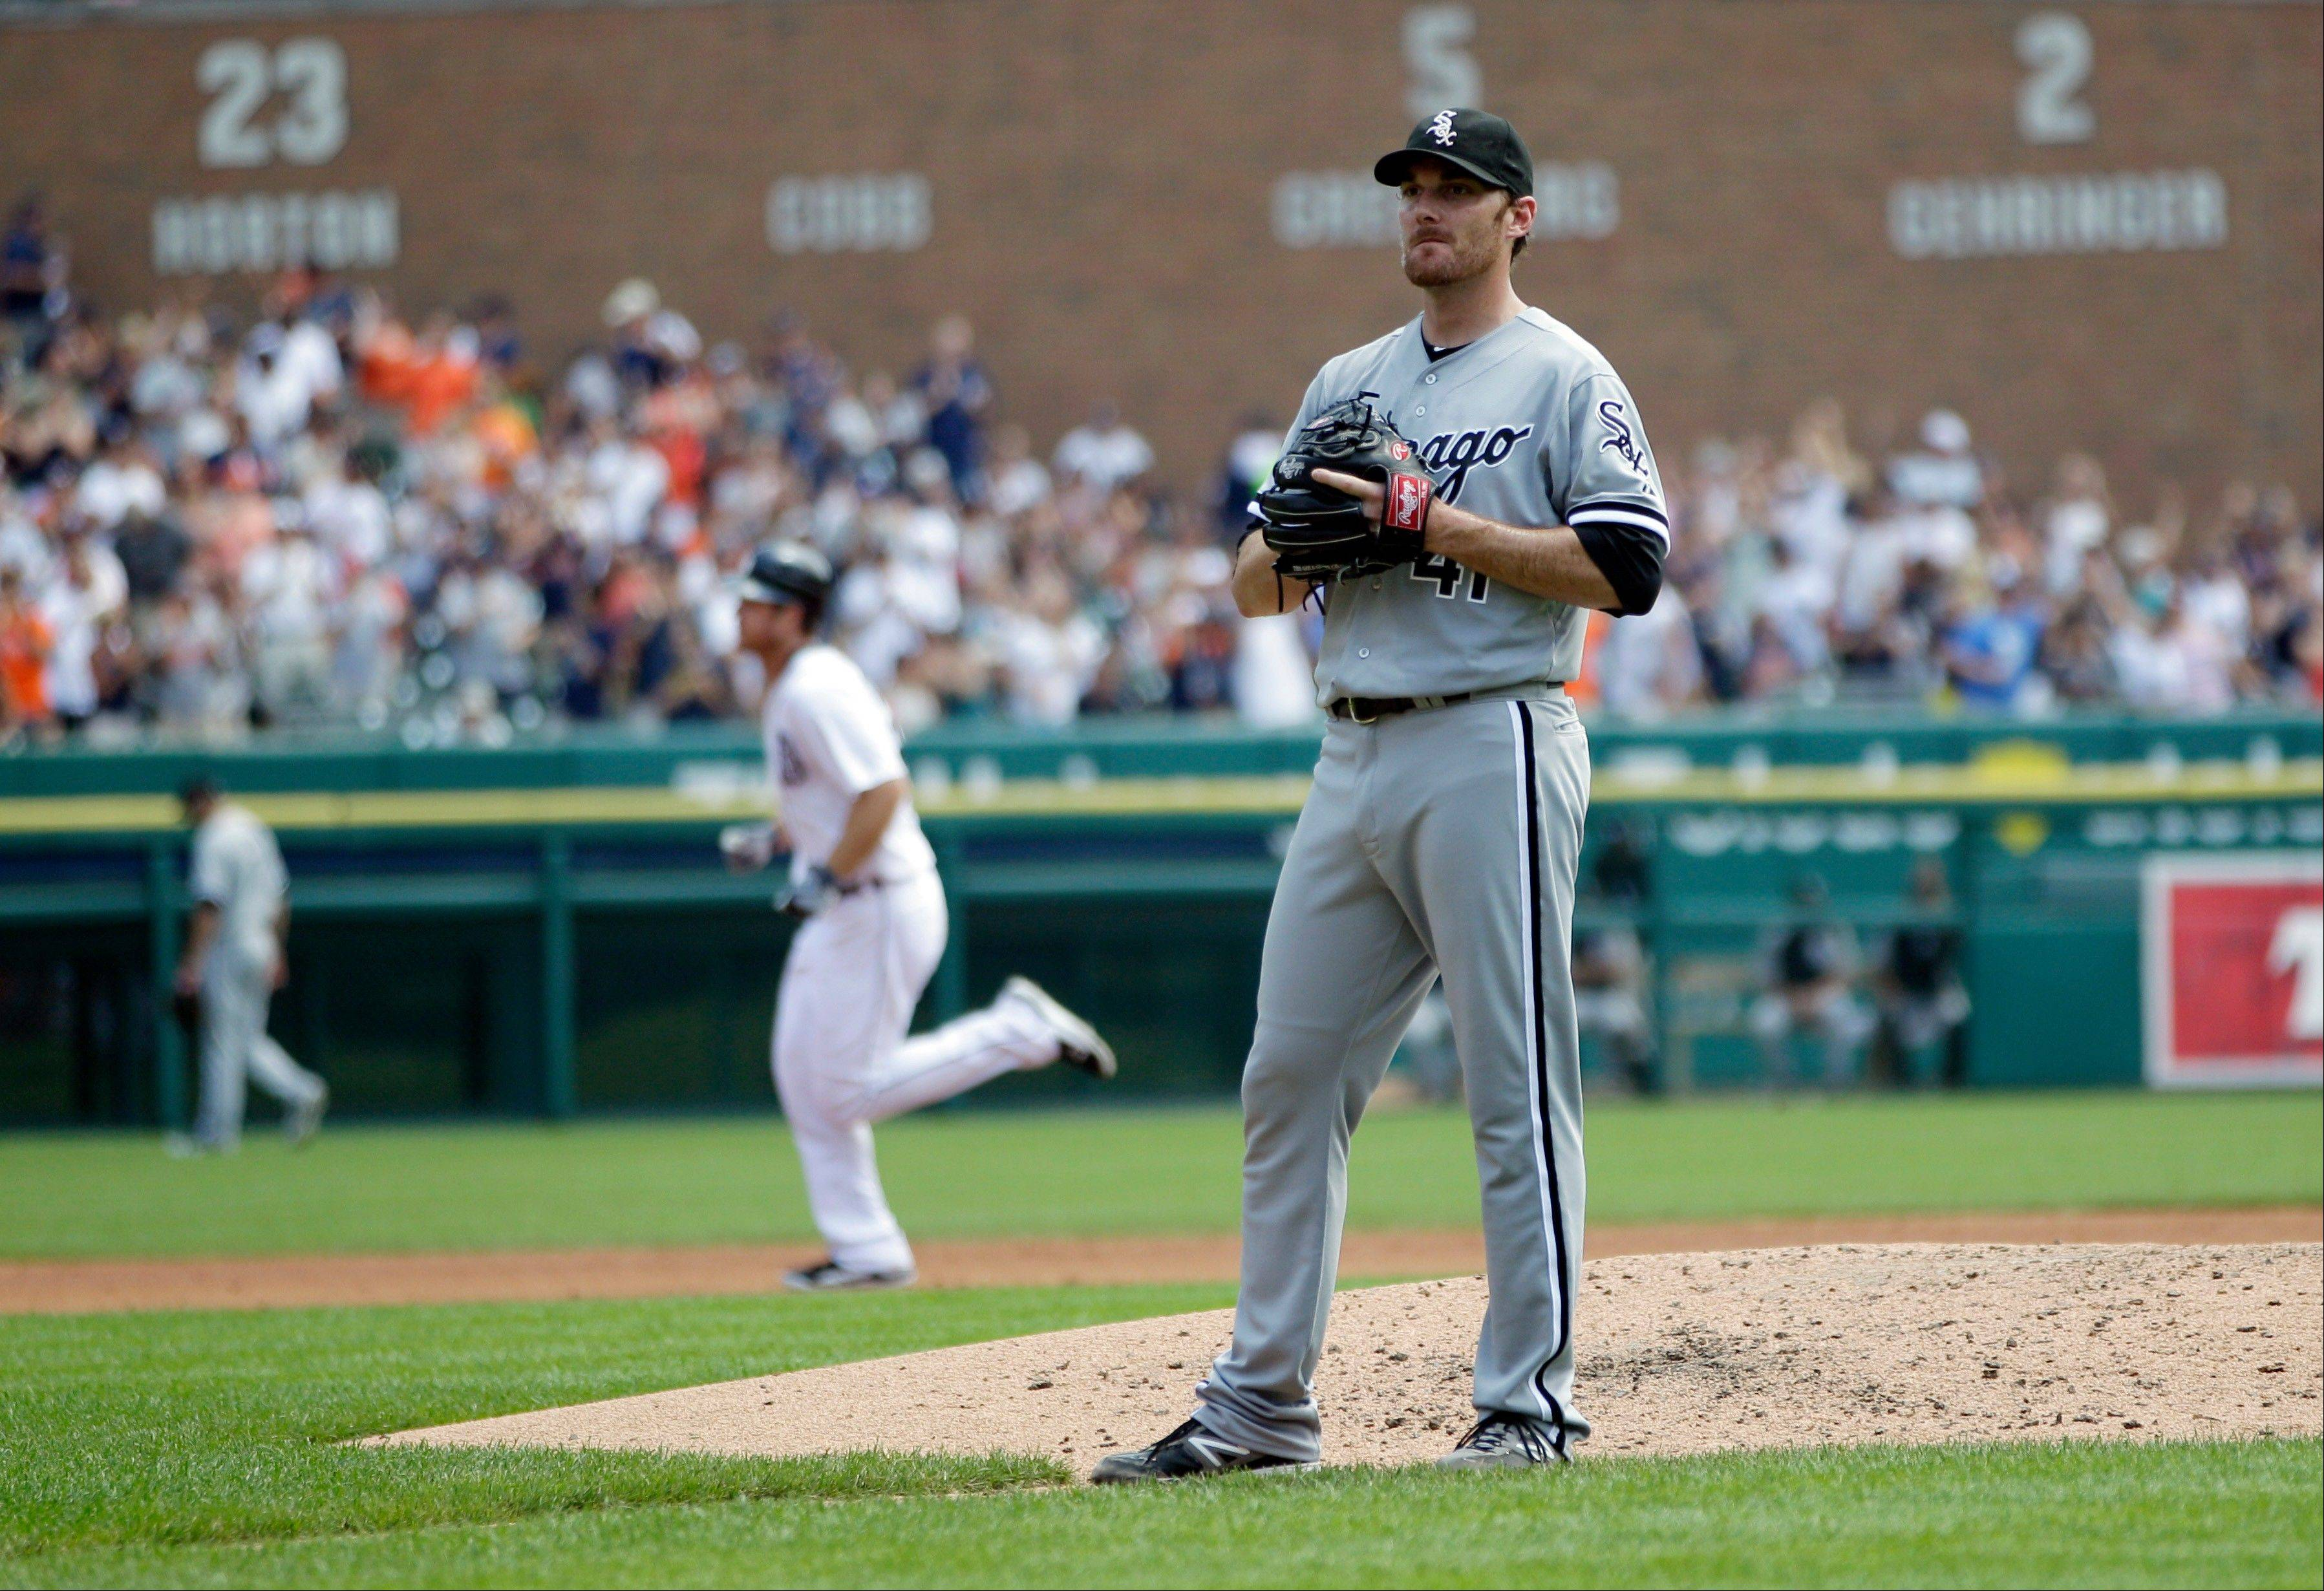 White Sox starting pitcher Philip Humber, right, stands at the mound Sunday as the Detroit Tigers� Brennan Boesch rounds the bases after hitting a two-run home run in the third inning.